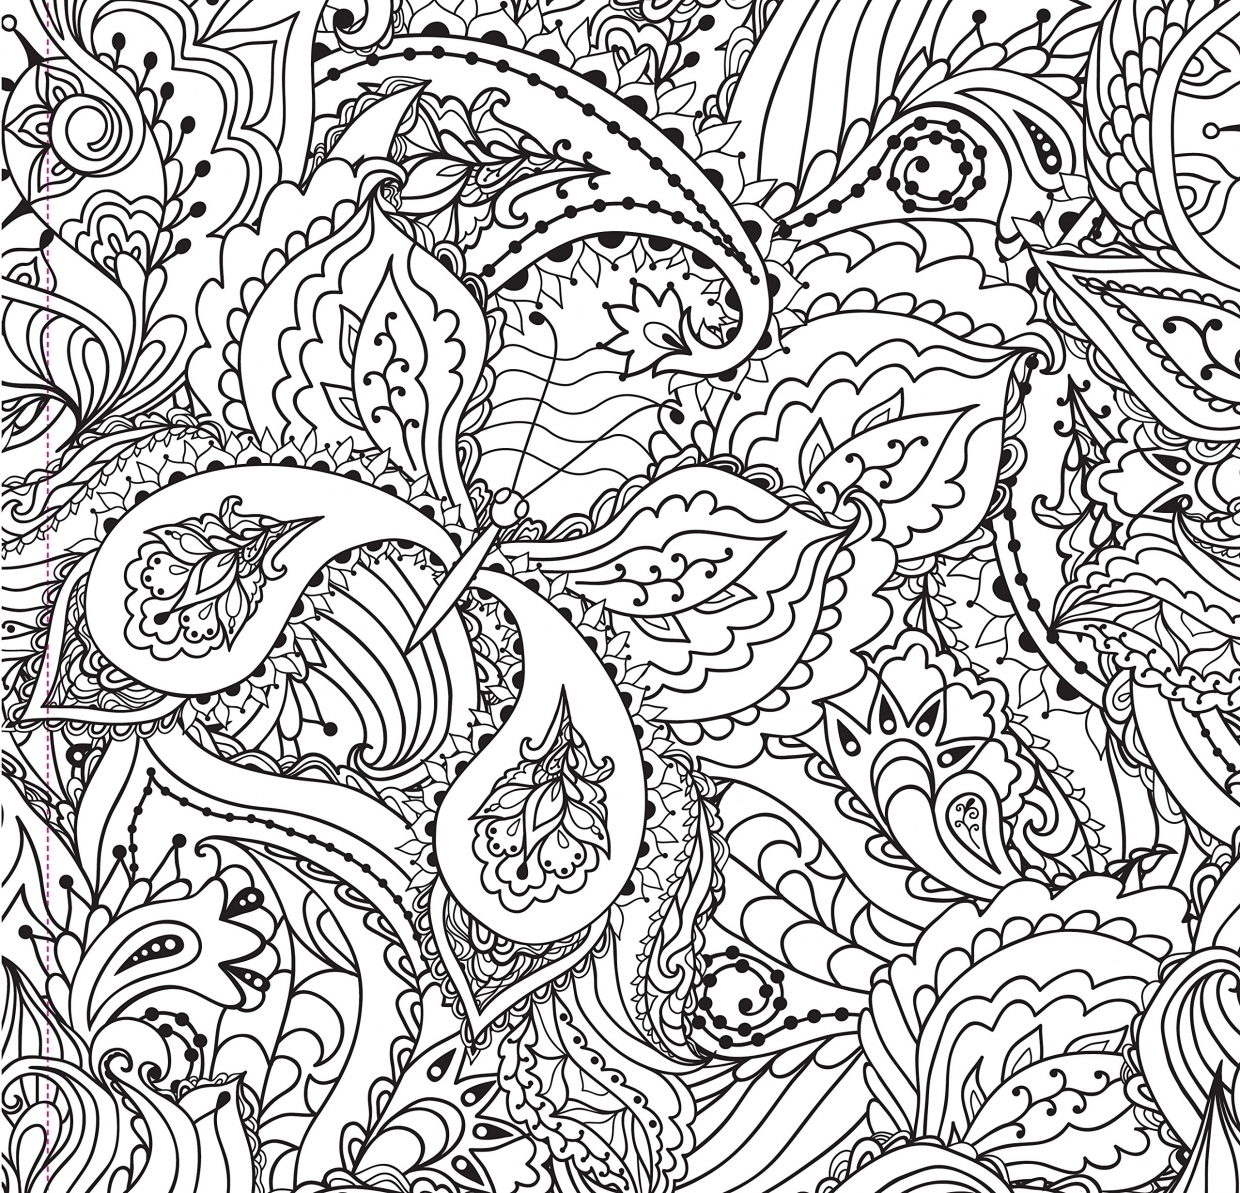 Complex Animal Coloring Pages - Coloring Pages | 1193x1240